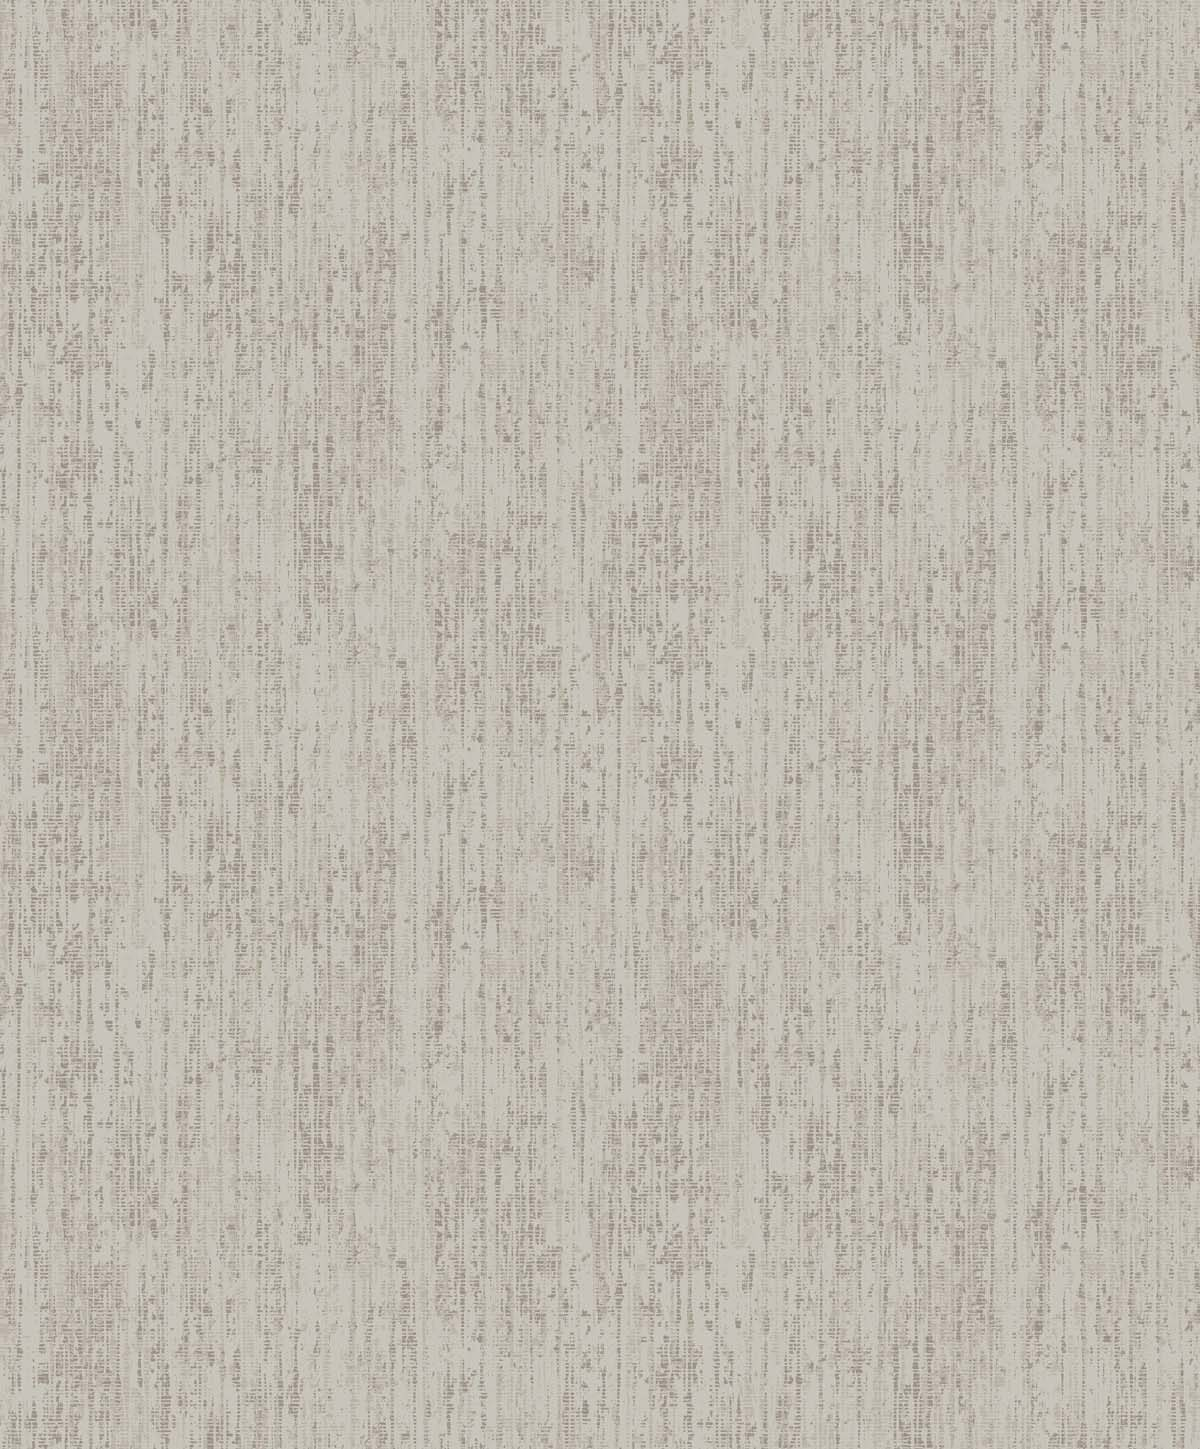 Sahara-wallpaper-Hessian-SH00615